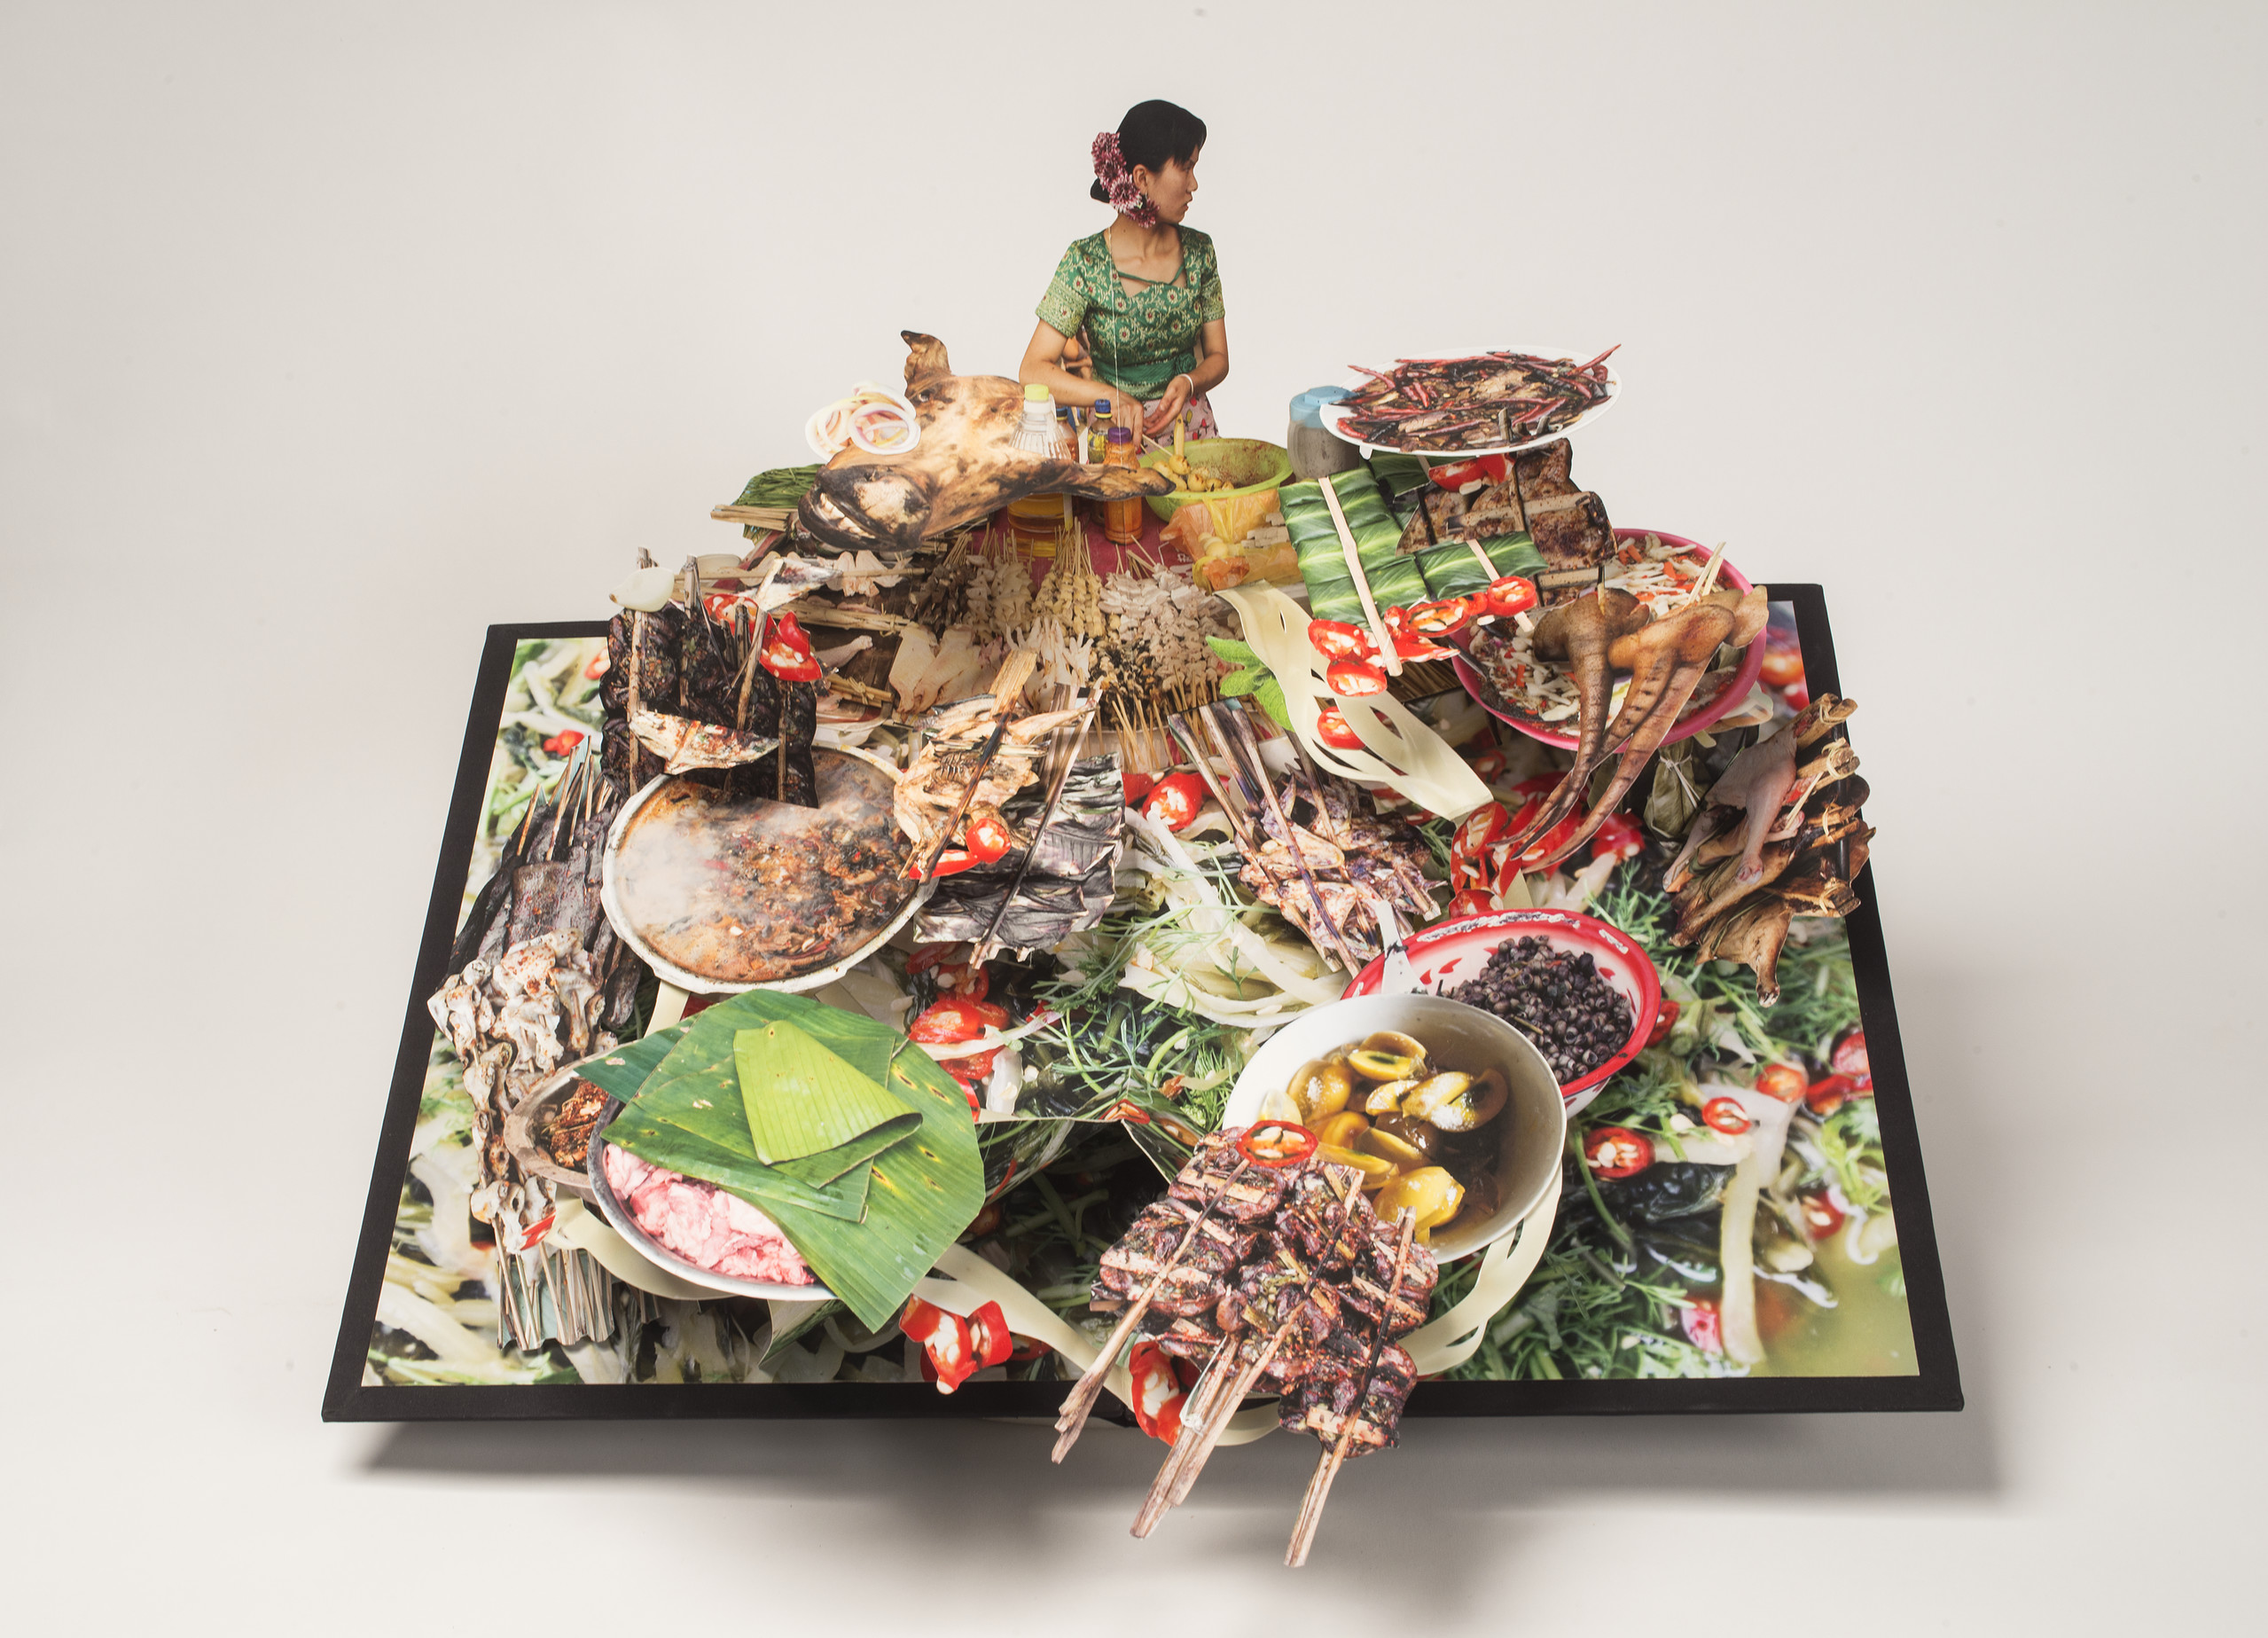 Large-scale pop-up book with a dark haired woman behind a huge display of food. She wears a green dress and purple flowers in her hair and turns to look over her left shoulder. The food explodes forward with bowls of soup, skewered meat, banana leaves, pig tail, and more.